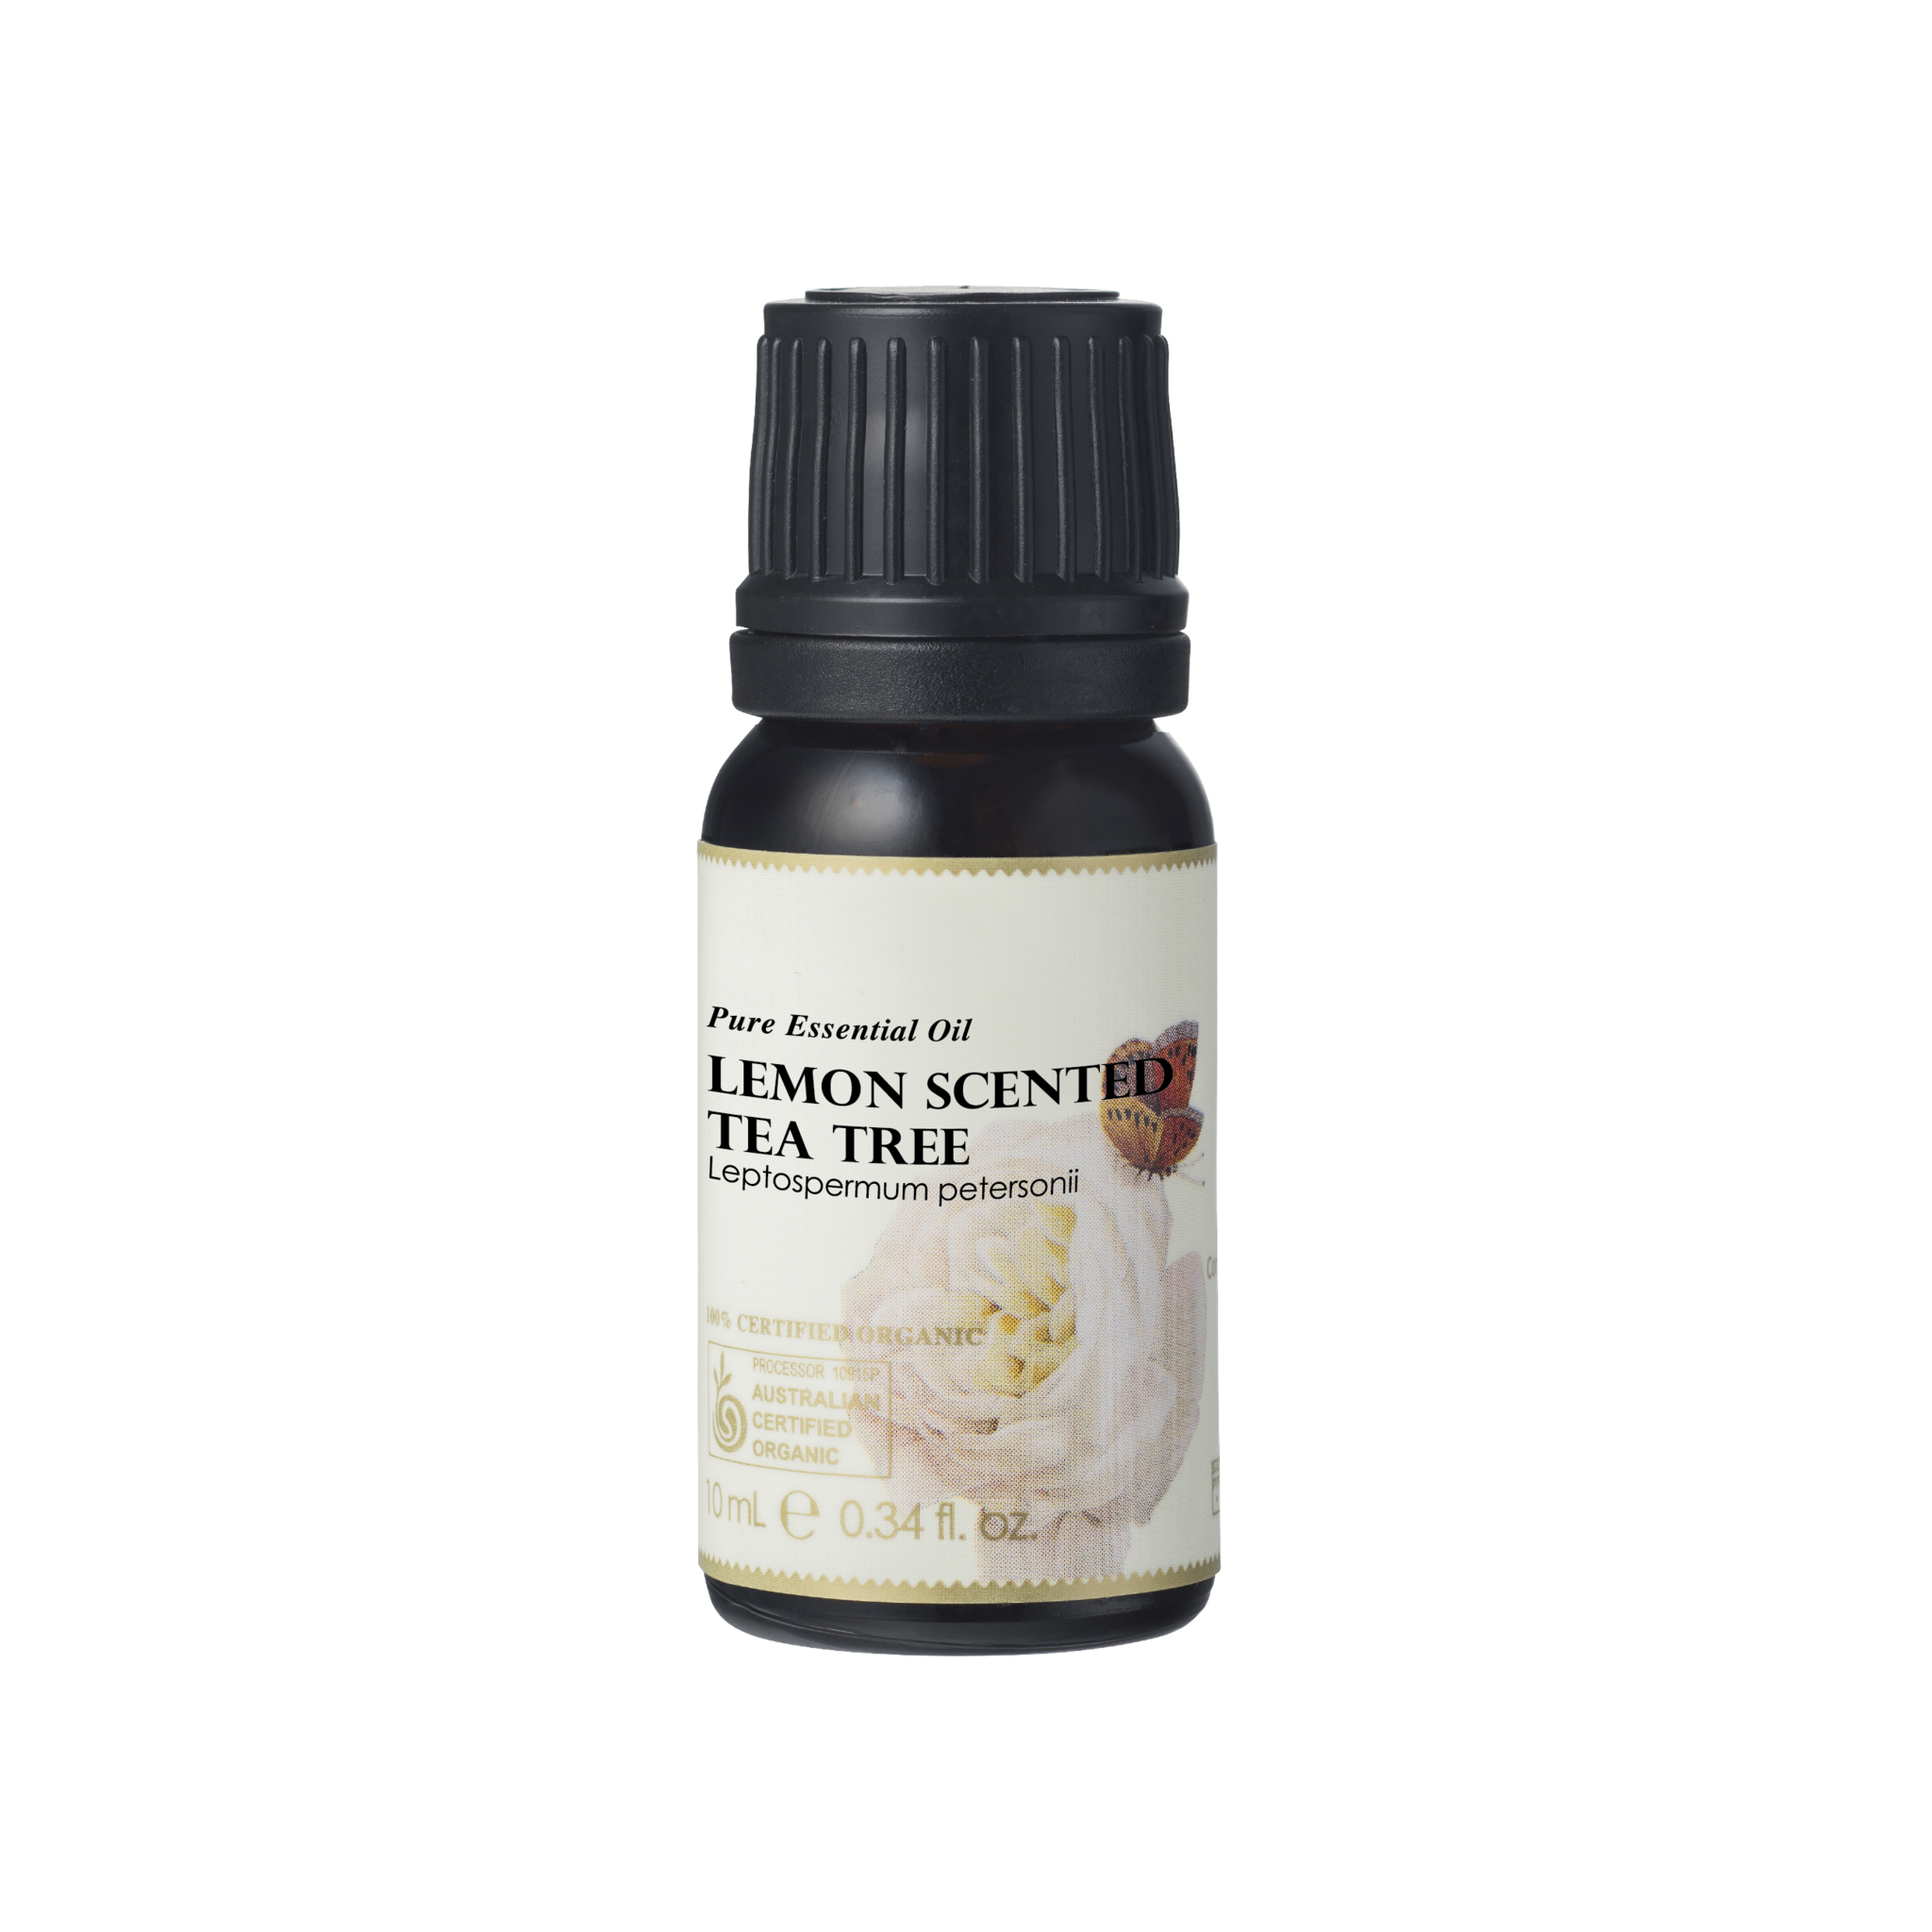 Lemon Scented Tea Tree Essential Oil